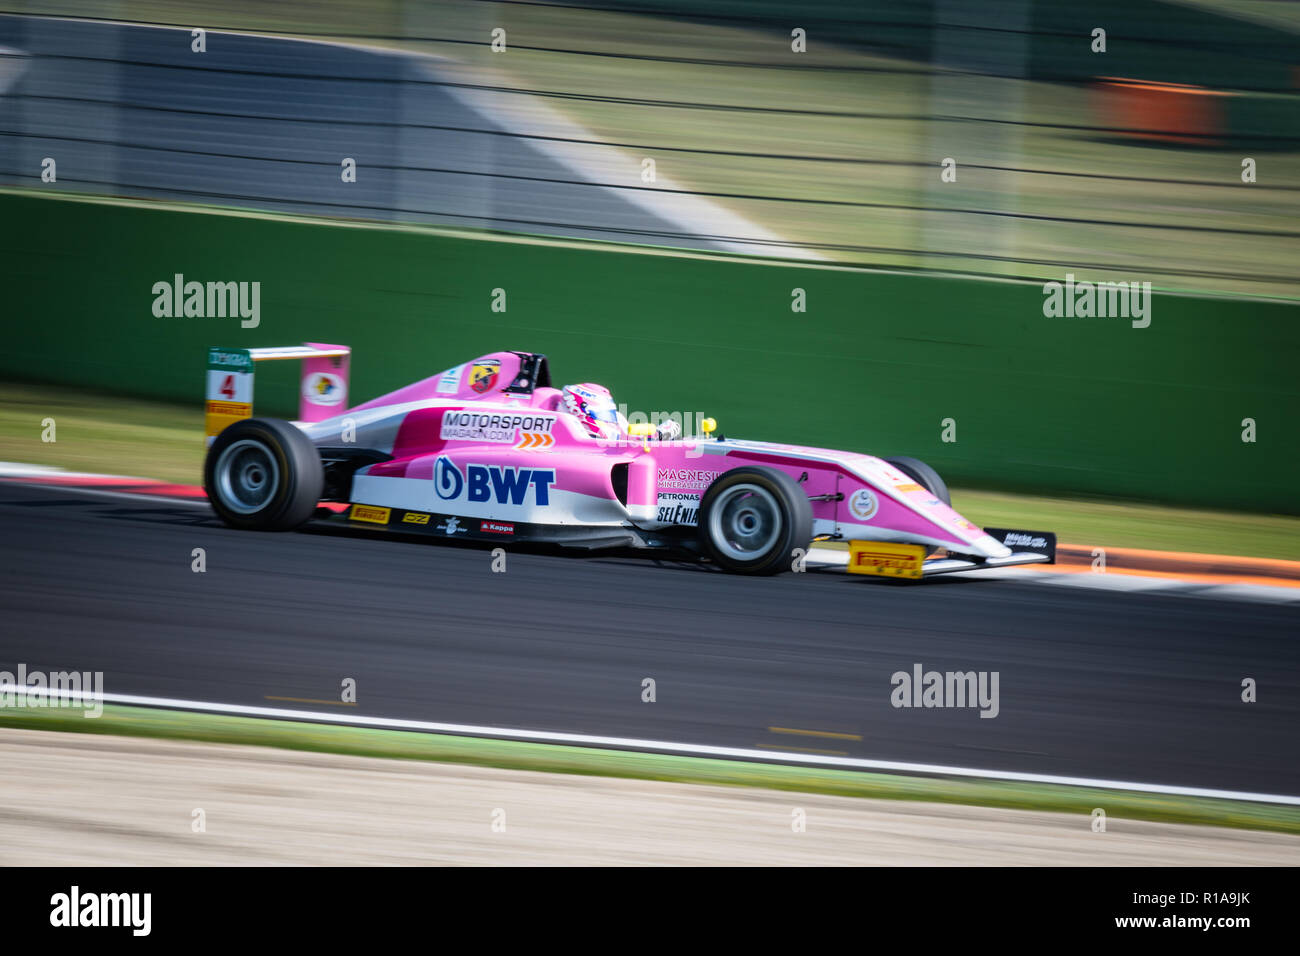 Vallelunga, Rome, Italy september 16 2018, Aci racing weekend. Formula 4 racing pink car at turn during the race, blurred motion background Stock Photo